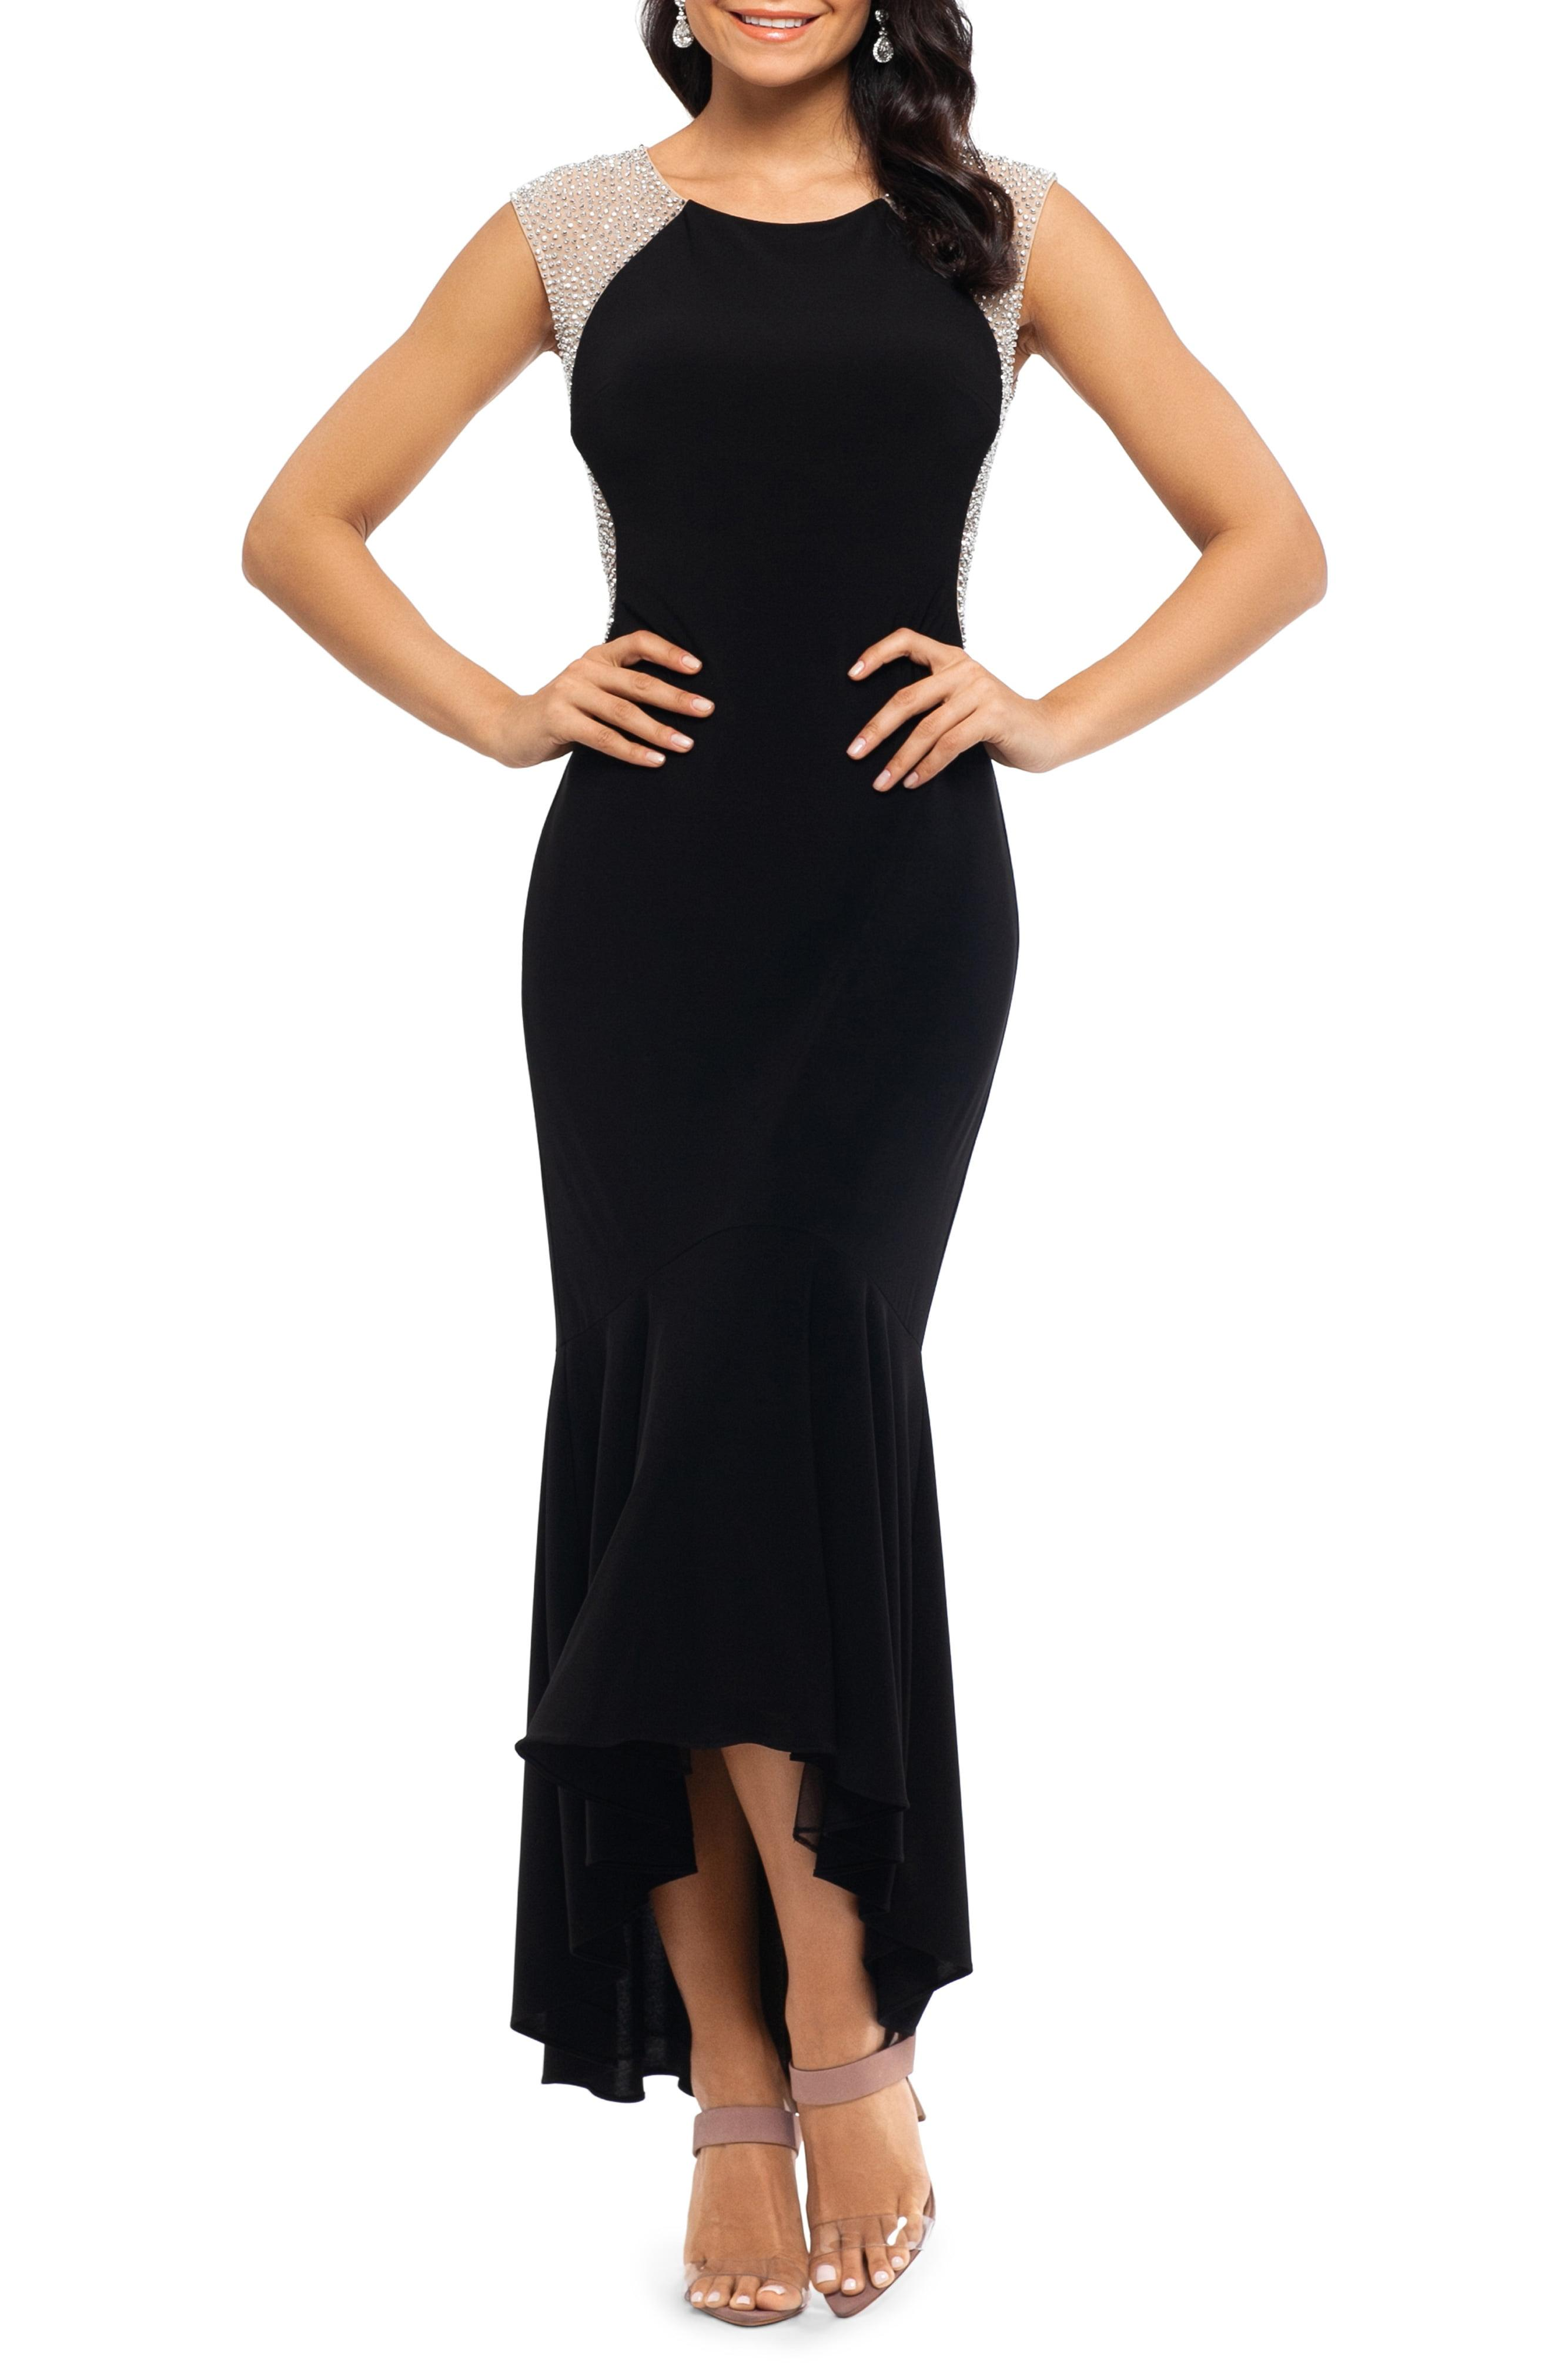 6df841c9 Lyst - Xscape Caviar Bead High/low Gown in Black